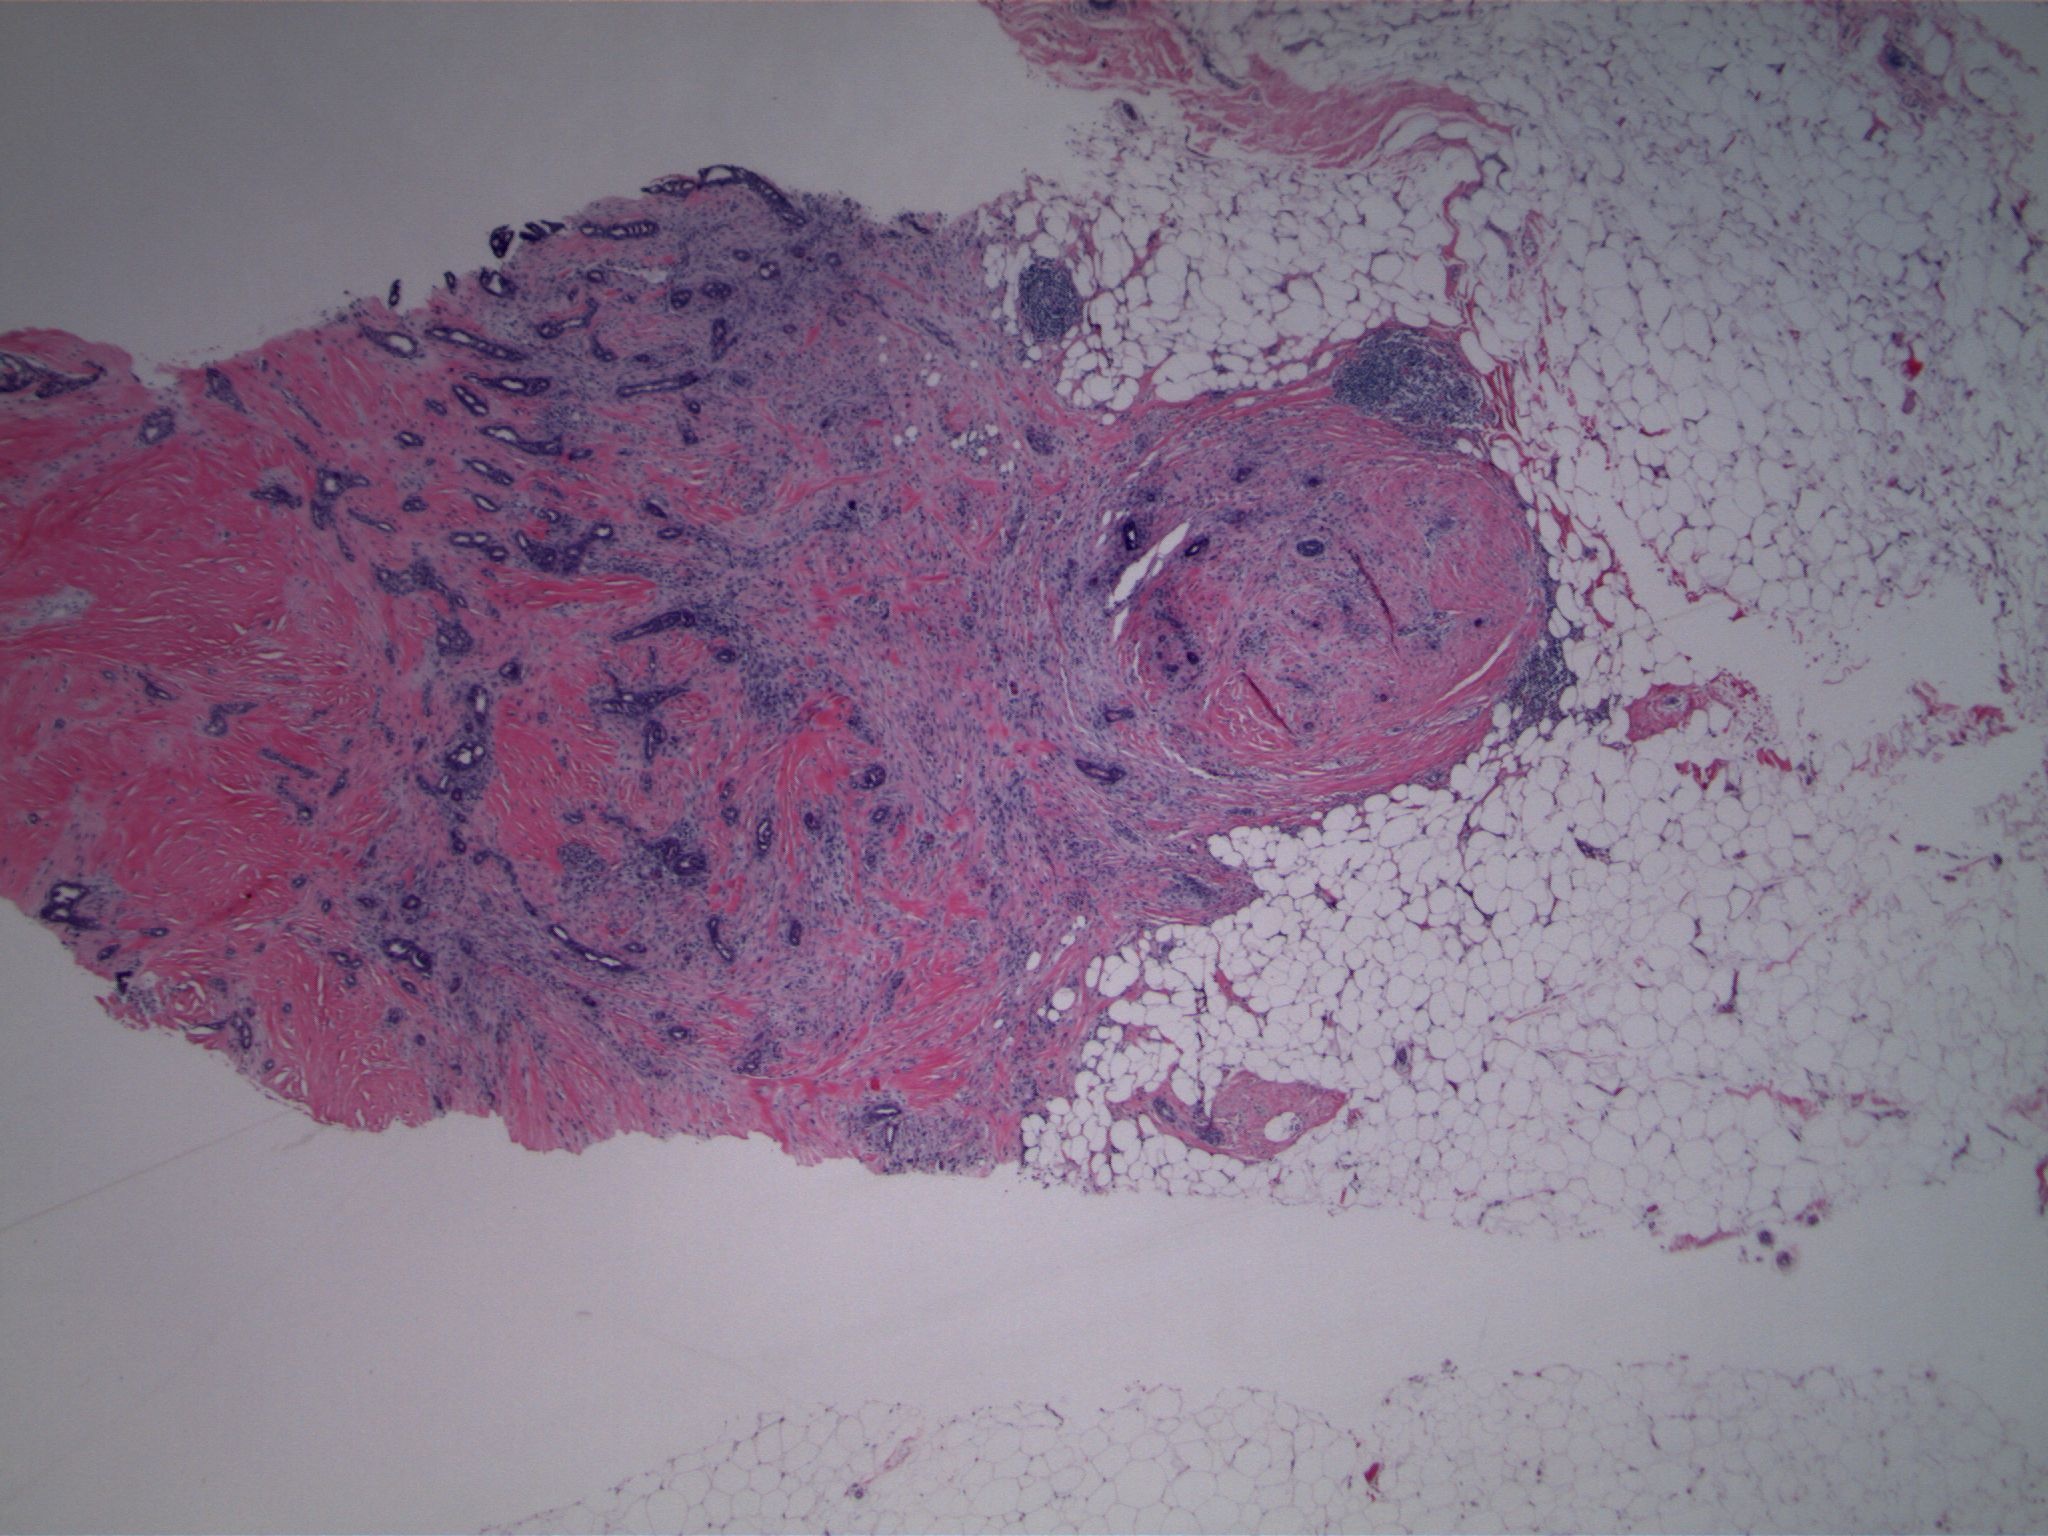 Image 4. At the opposite end of the core (just out of view to the right of image 1) there are irregularly placed small glandular structures associated with a desmoplastic spindled stroma, with infiltration into fat